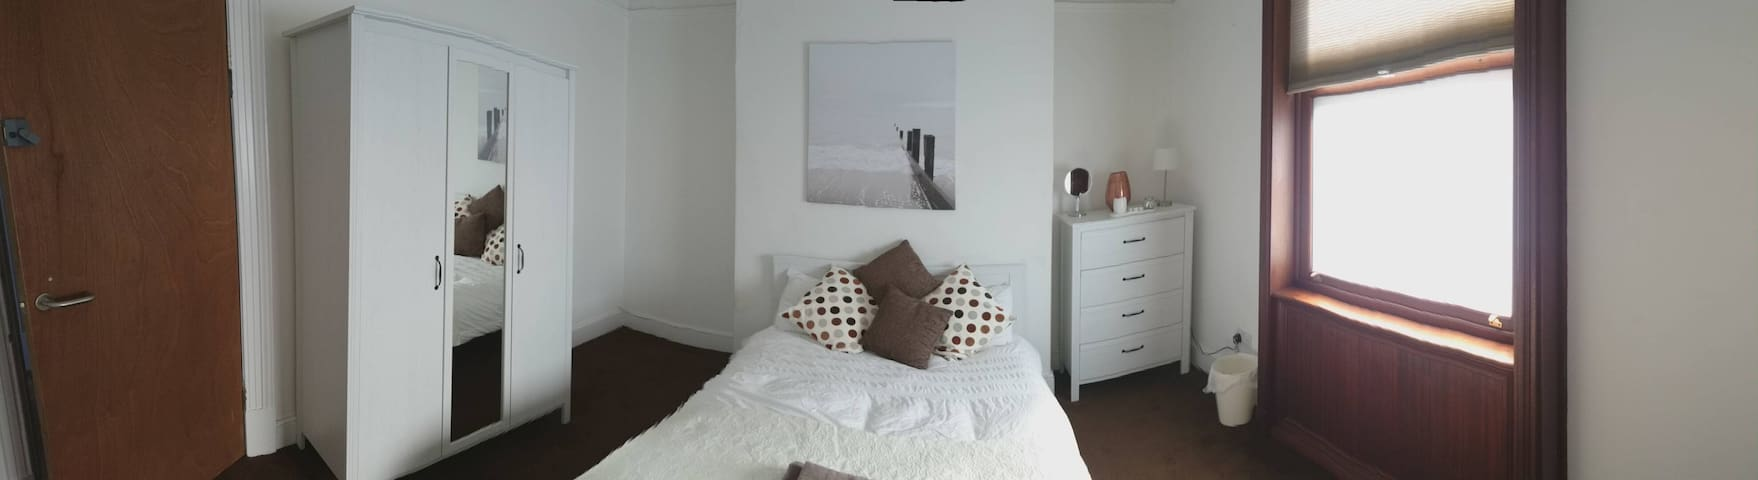 Double Bedroom GFR Det House with Secure Parking - Leicester - House